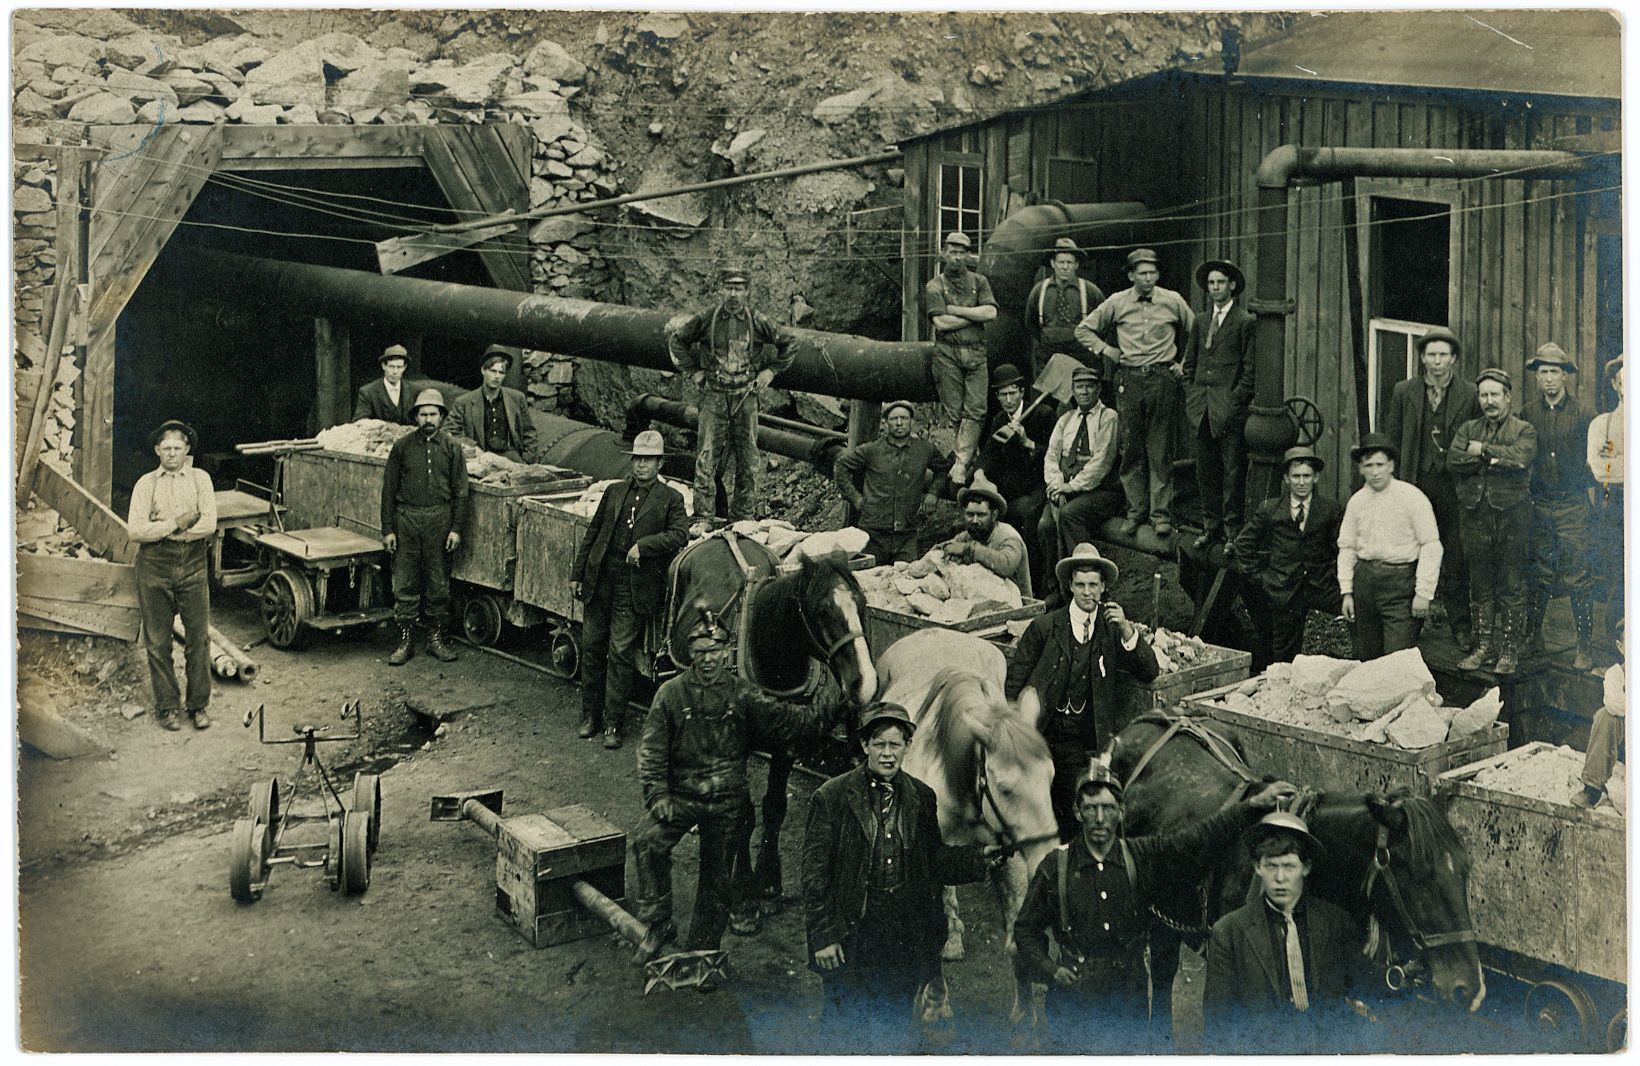 This Group-Photo of workers, management and equipment at the Portal of the Roosevelt Drainage Tunnel during its construction has been used in an article in the July 1914 edition of the Mining Science journal/magazine, so it predates that date with an unknown time. No names given in neither of my sources for this image, but there are many men here.    Image shows 8-ore-cars filled with rock from the tunnel work, also three horses are held in front of the cars, uncertain if they where the motive power used to haul the cars out of the tunnel. There are also some other foot powered rail cycle types shown, a shed makes up some of the background, a compressor building of some sort as there is a large pipe coming from it into the tunnel opening.